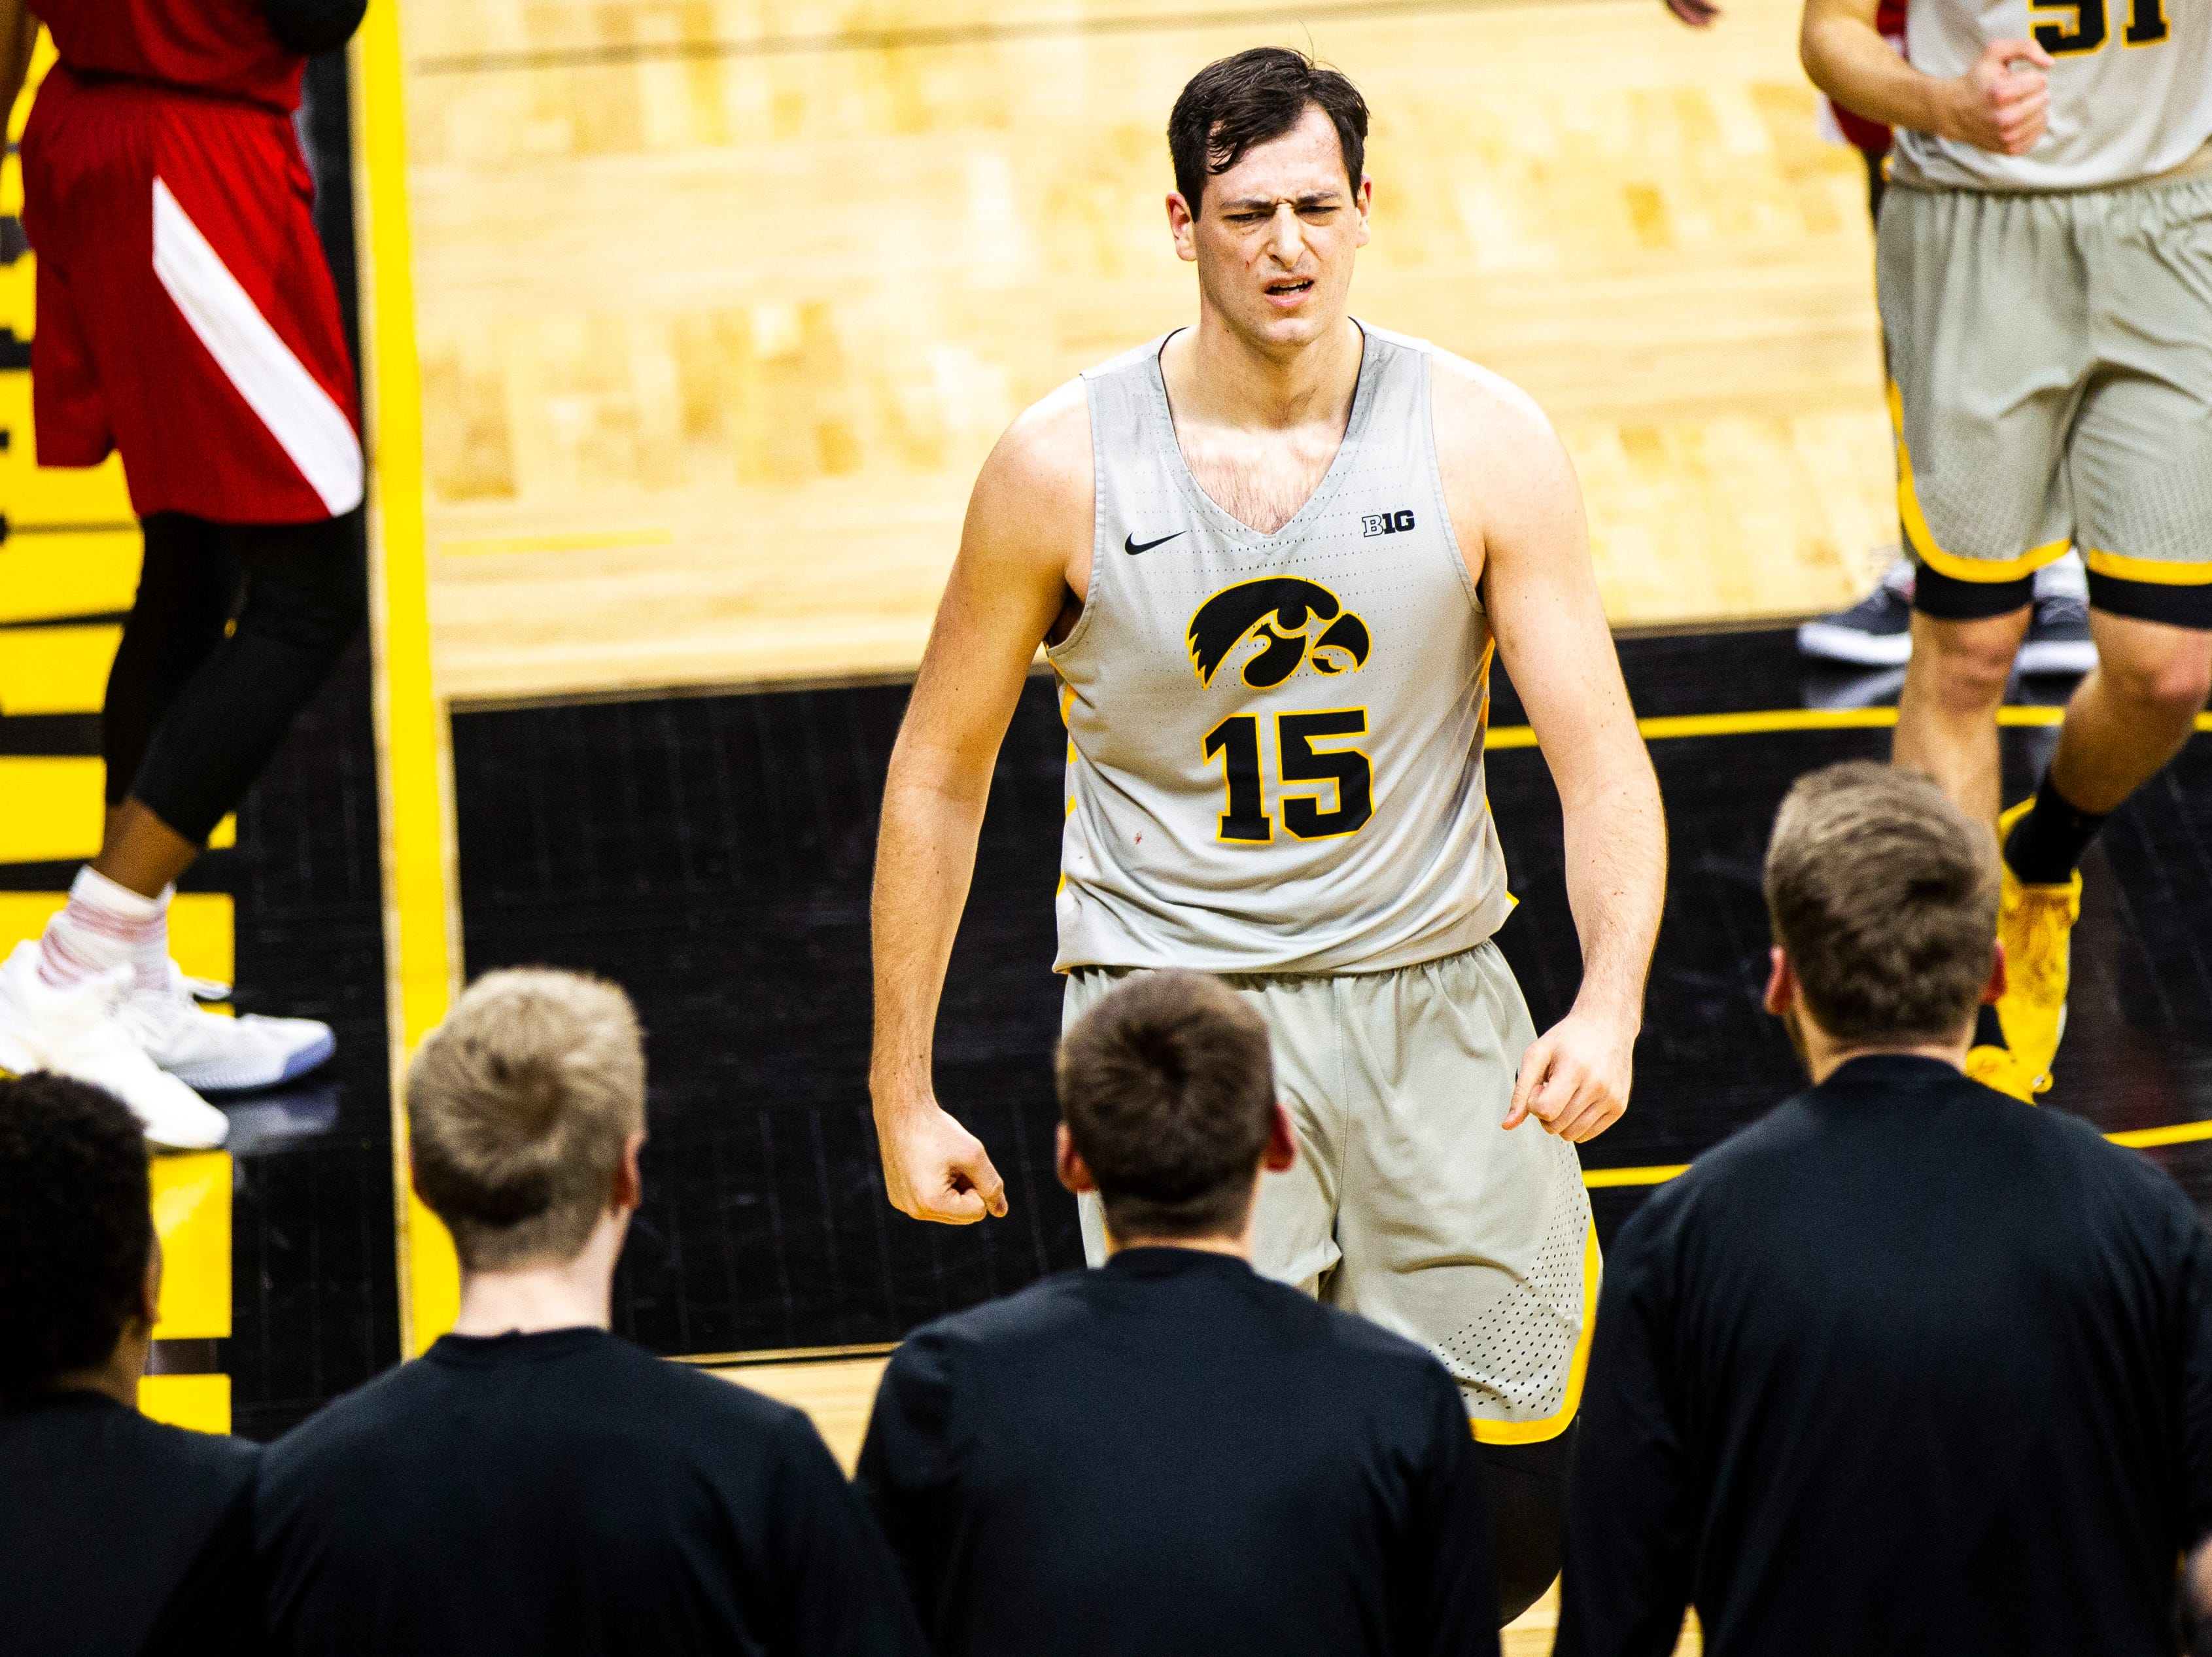 Iowa forward Ryan Kriener (15) reacts after drawing a foul during a NCAA Big Ten Conference men's basketball game on Sunday, Jan. 6, 2019, at the Carver-Hawkeye Arena in Iowa City, Iowa.